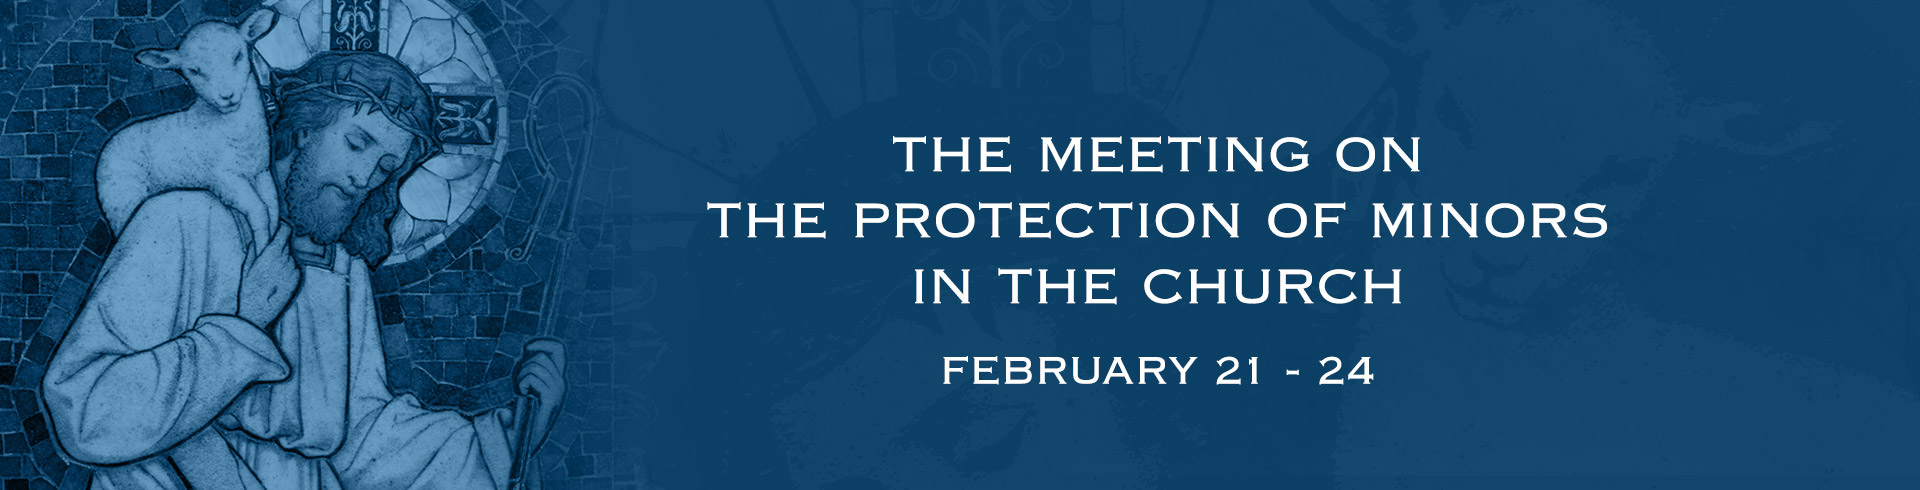 The meeting on the Protection of Minors in the Church | Salt